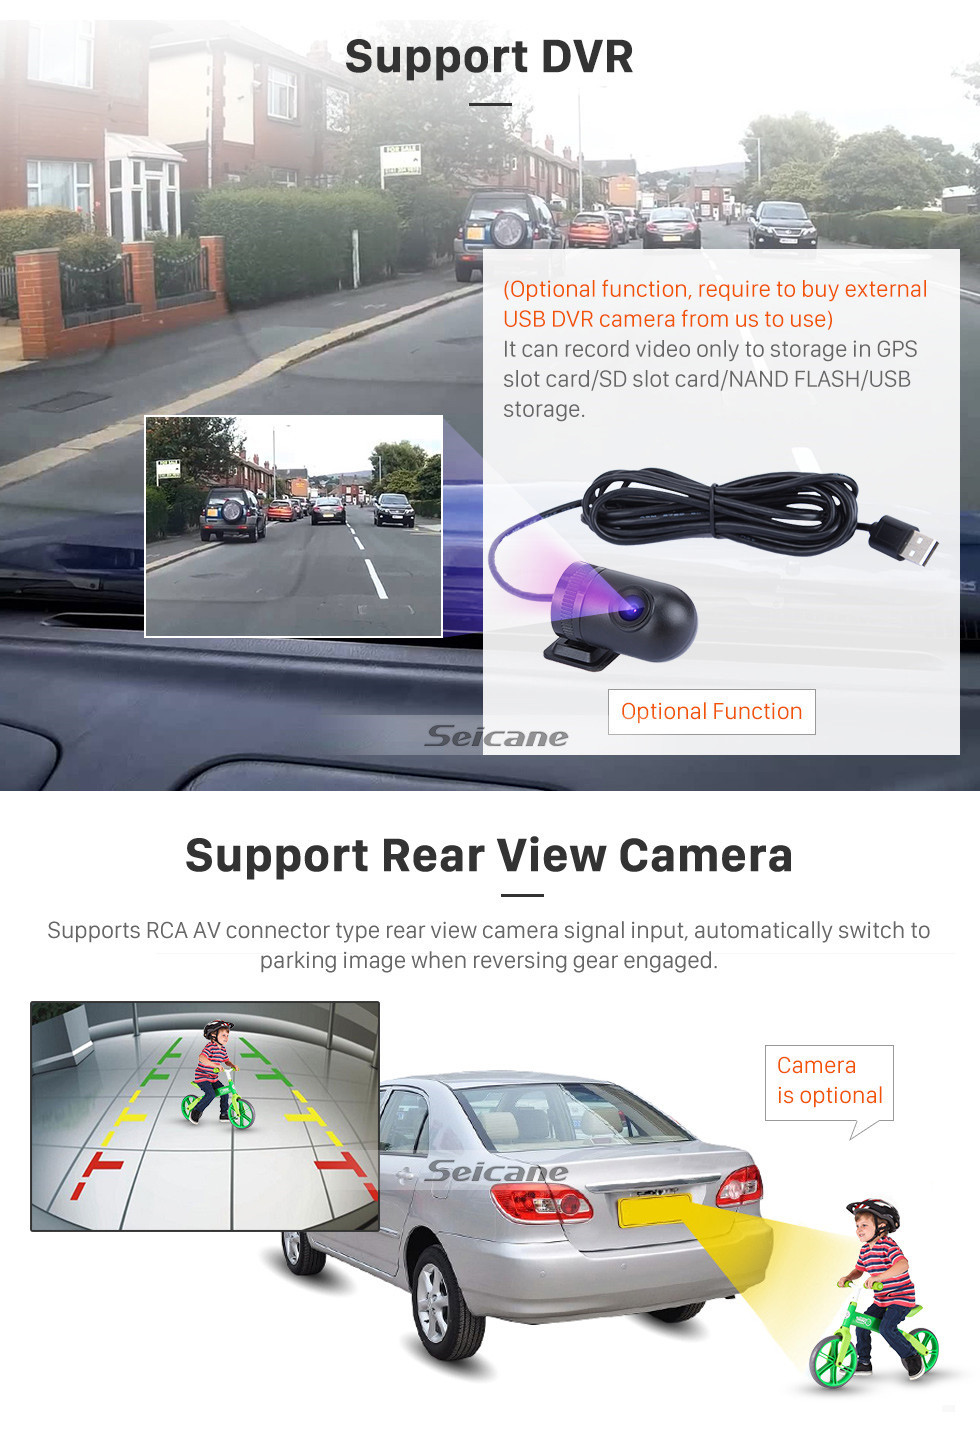 Seicane OEM 9 inch Android 10.0 for 2017 Renault Clio Radio Bluetooth HD Touchscreen GPS Navigation System Carplay support DVR Digital TV